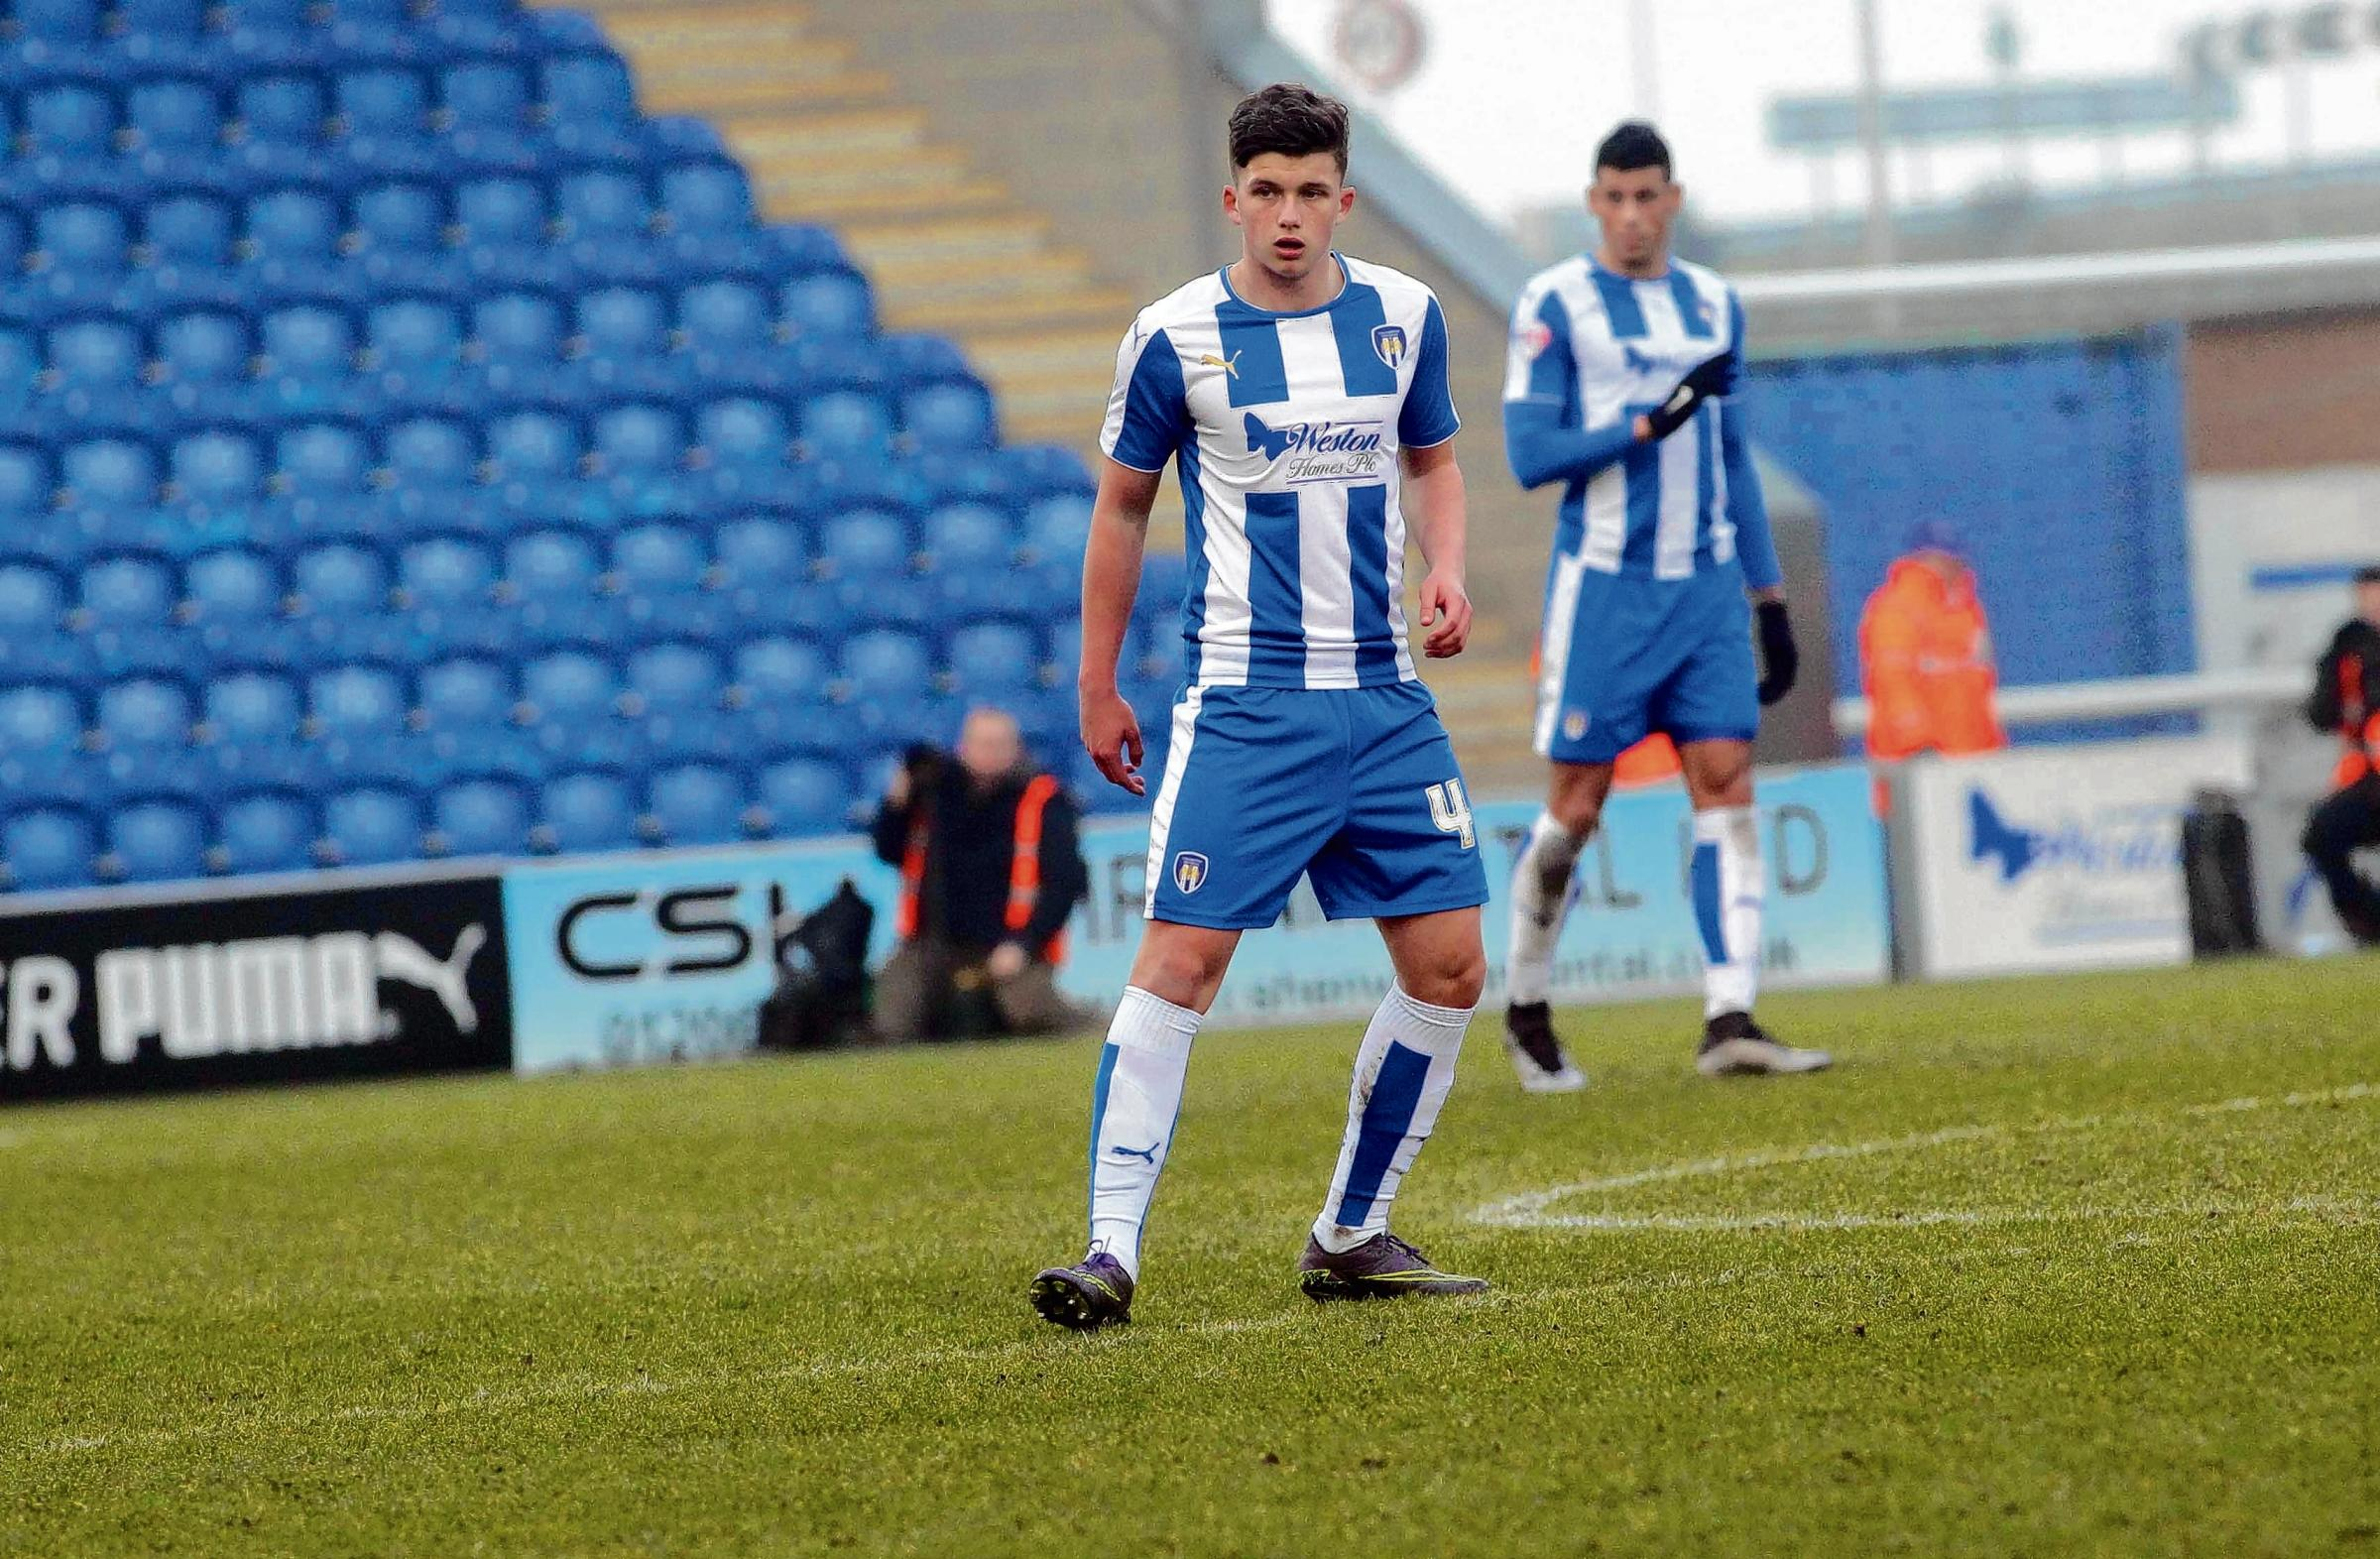 Call-up - Colchester United youngster Louis Dunne has been called up to the Republic of Ireland under-18 squad for their game against England under-18s this weekend.